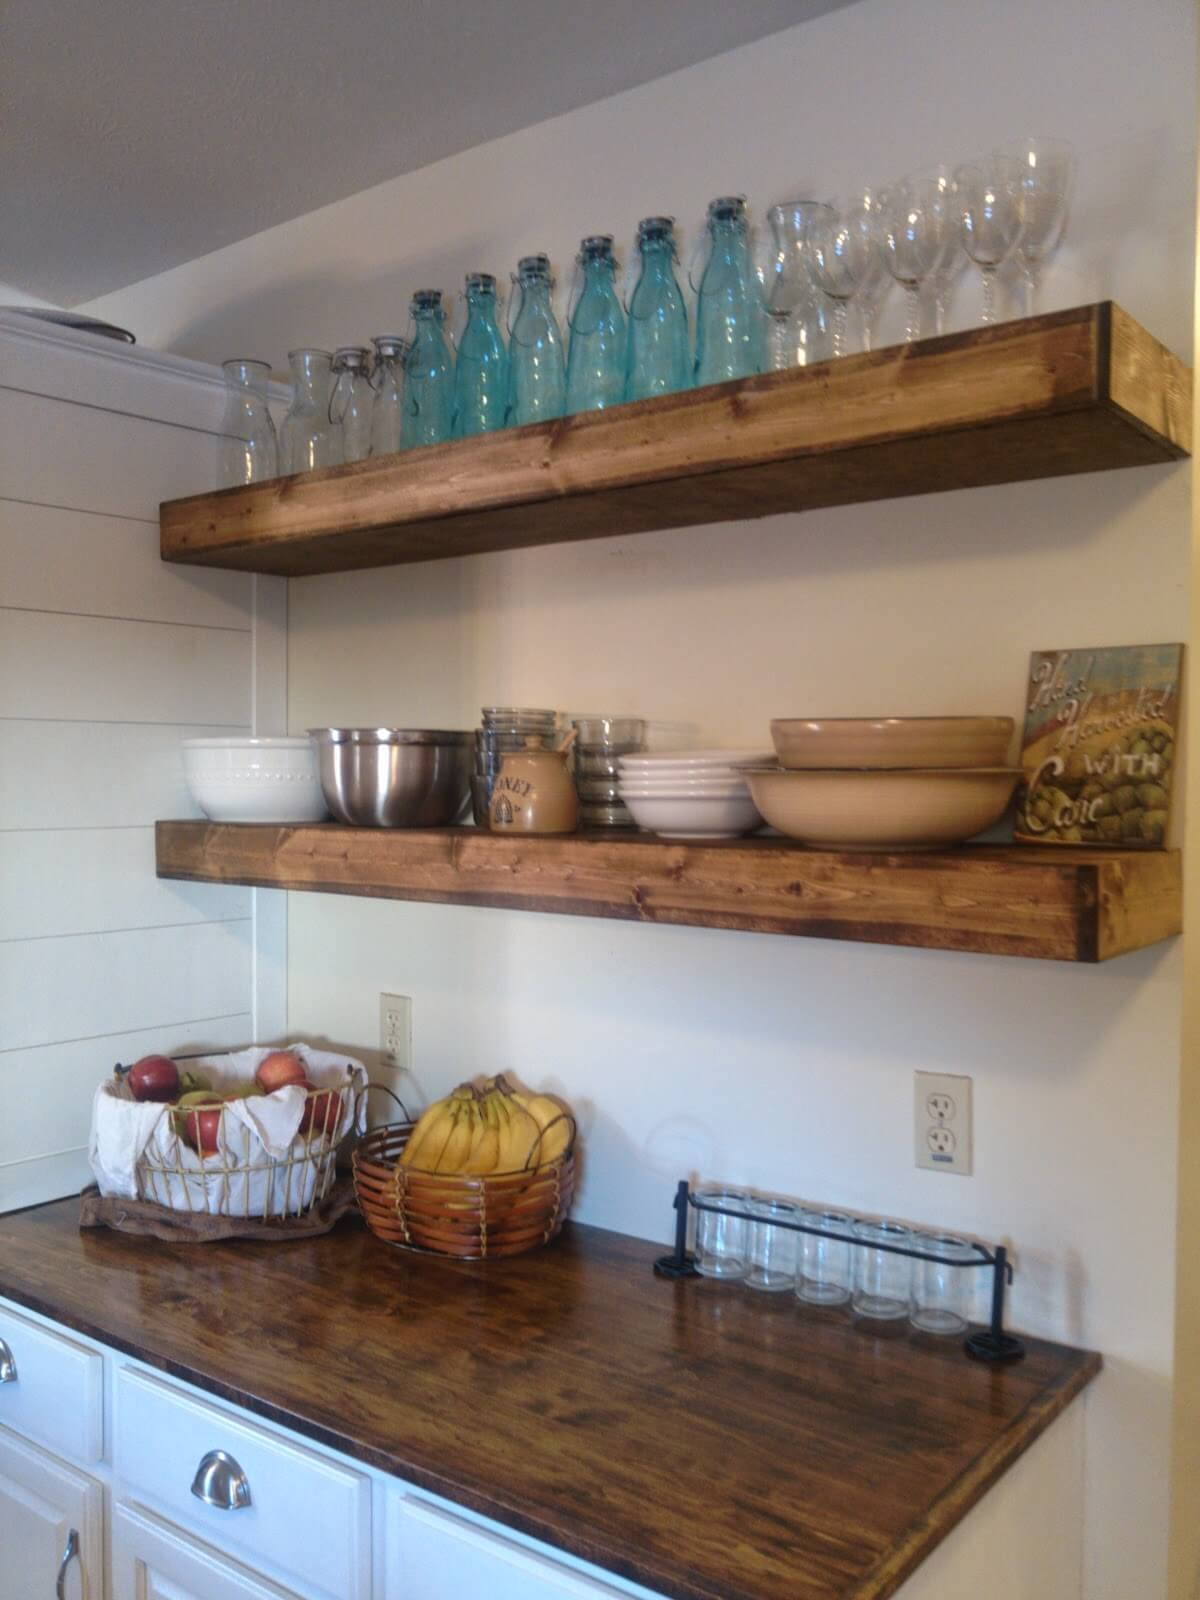 best diy floating shelf ideas and designs for homebnc decorating shelves kitchen elegant farm style heavy duty mitre magnets cabinet supports cube storage unit steel pins mirrored